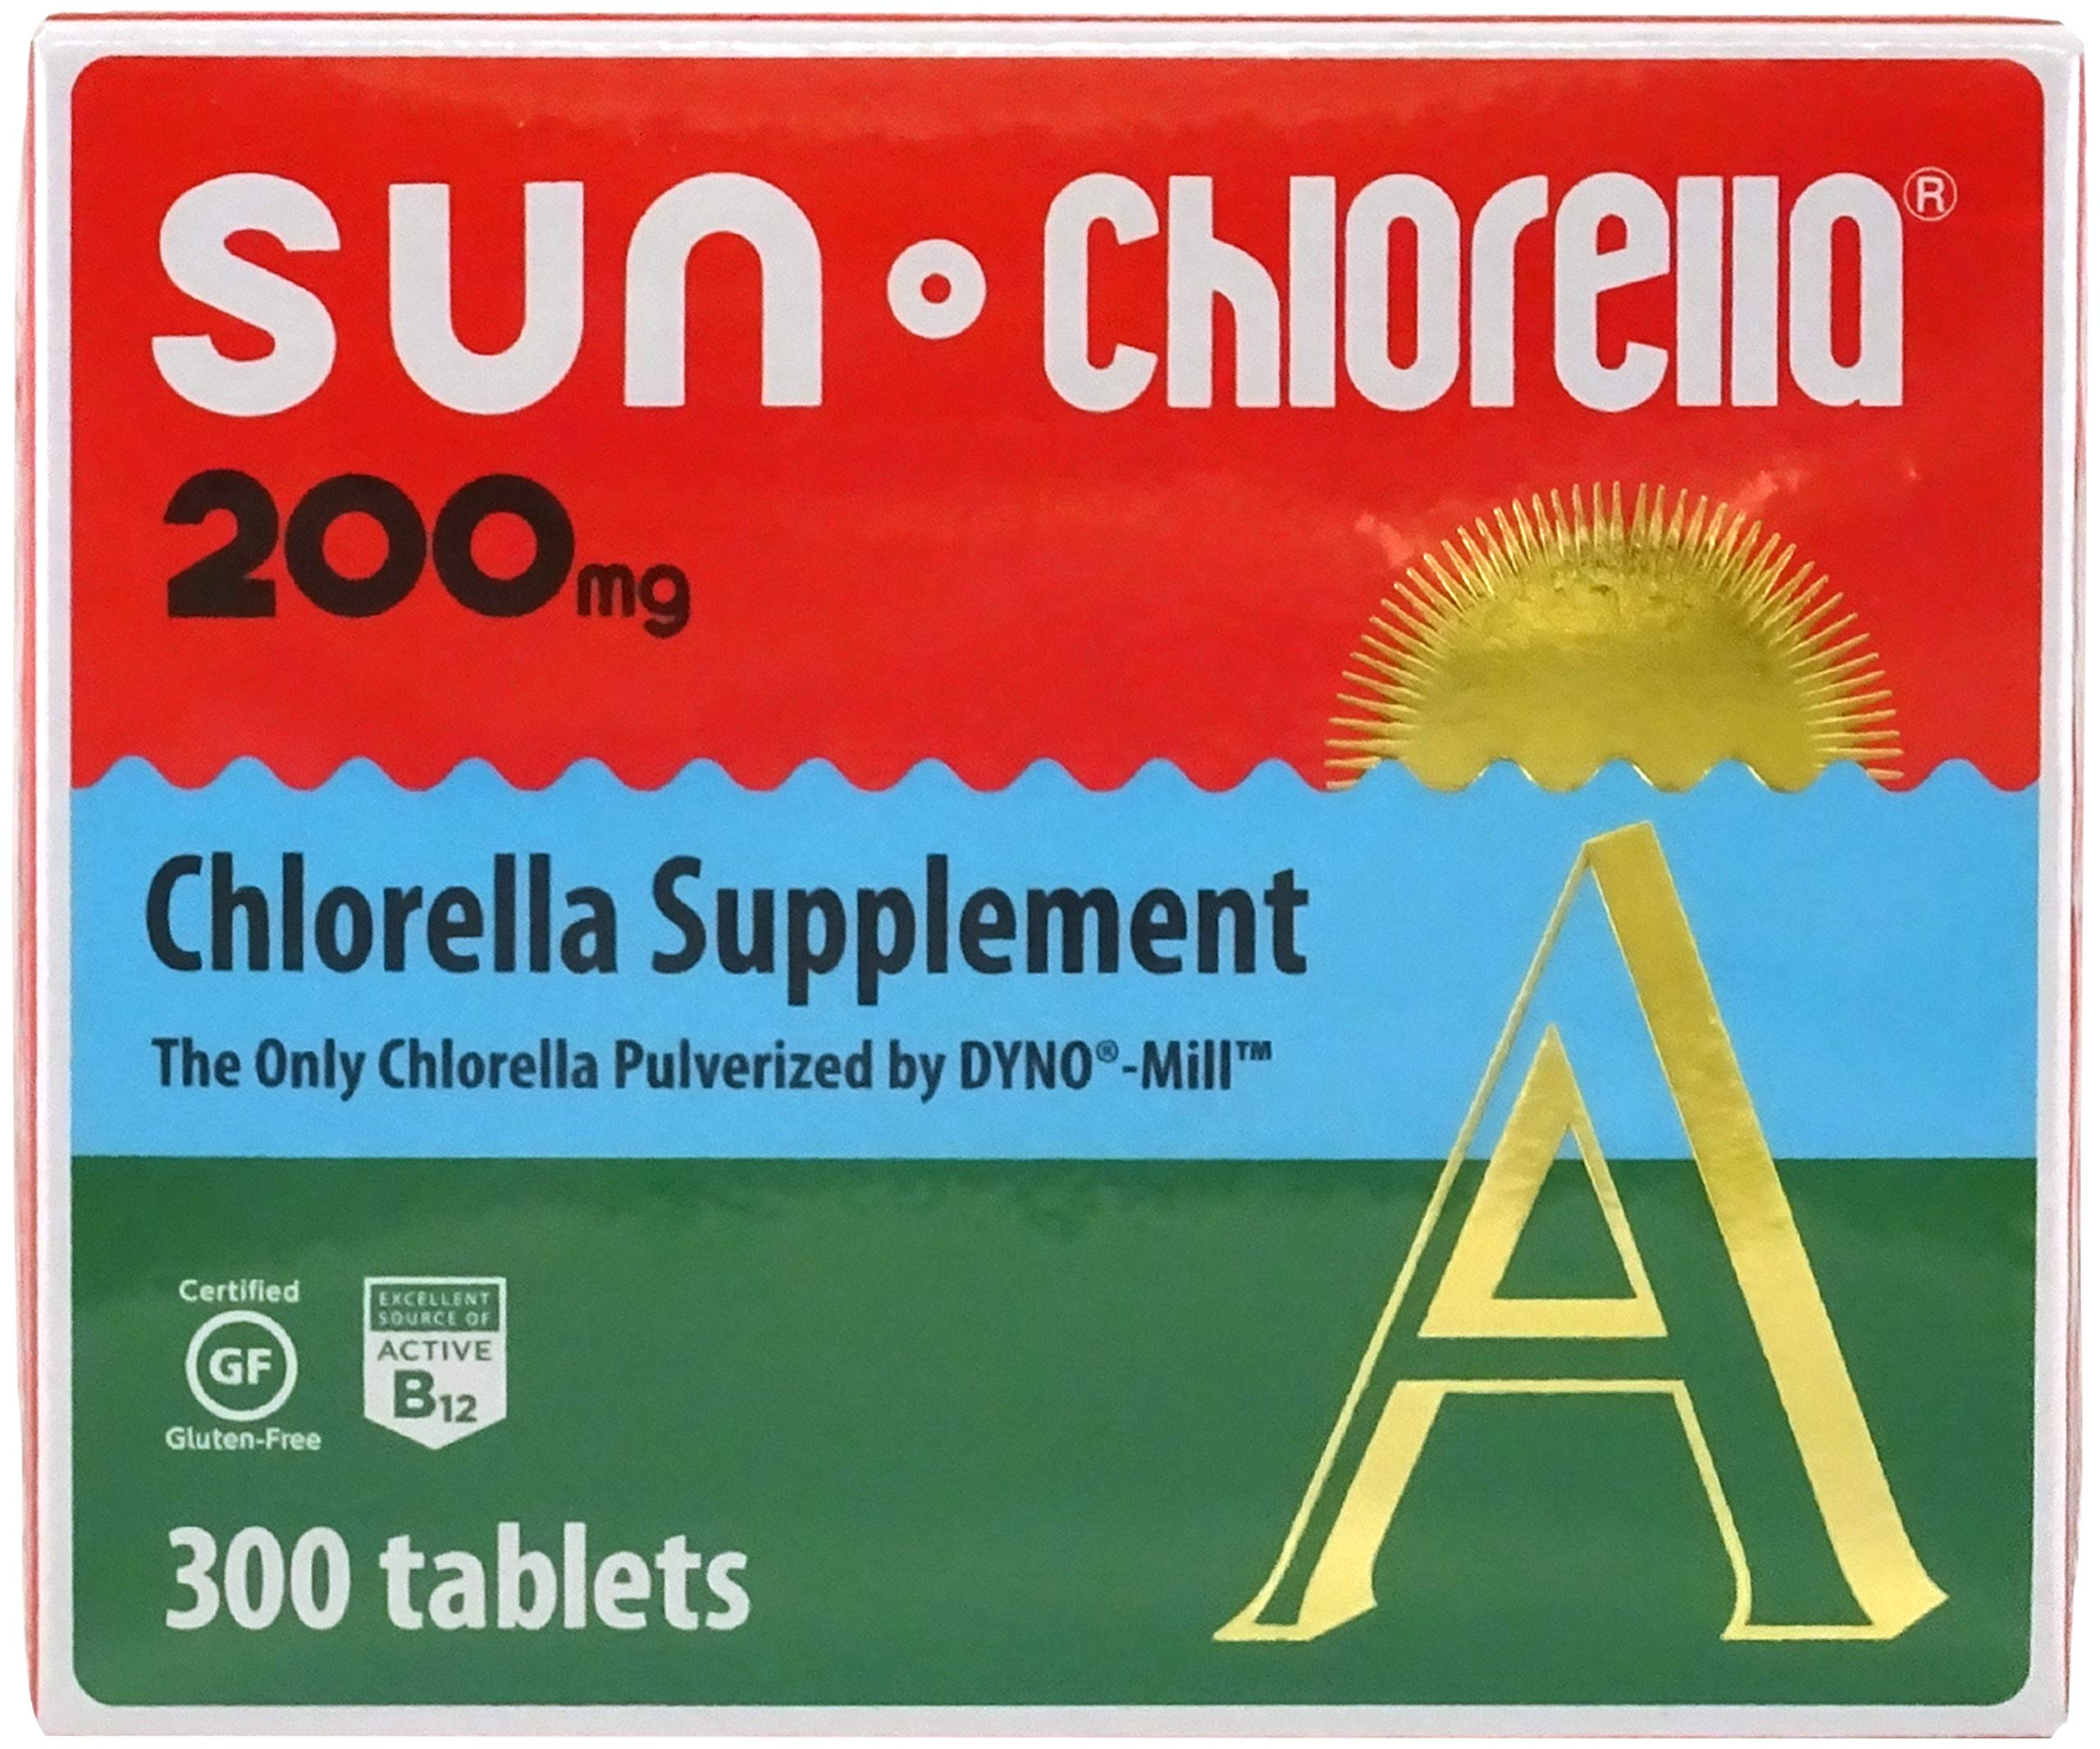 Sun Chlorella, Dietary Supplement 200mg, 300 Tablets